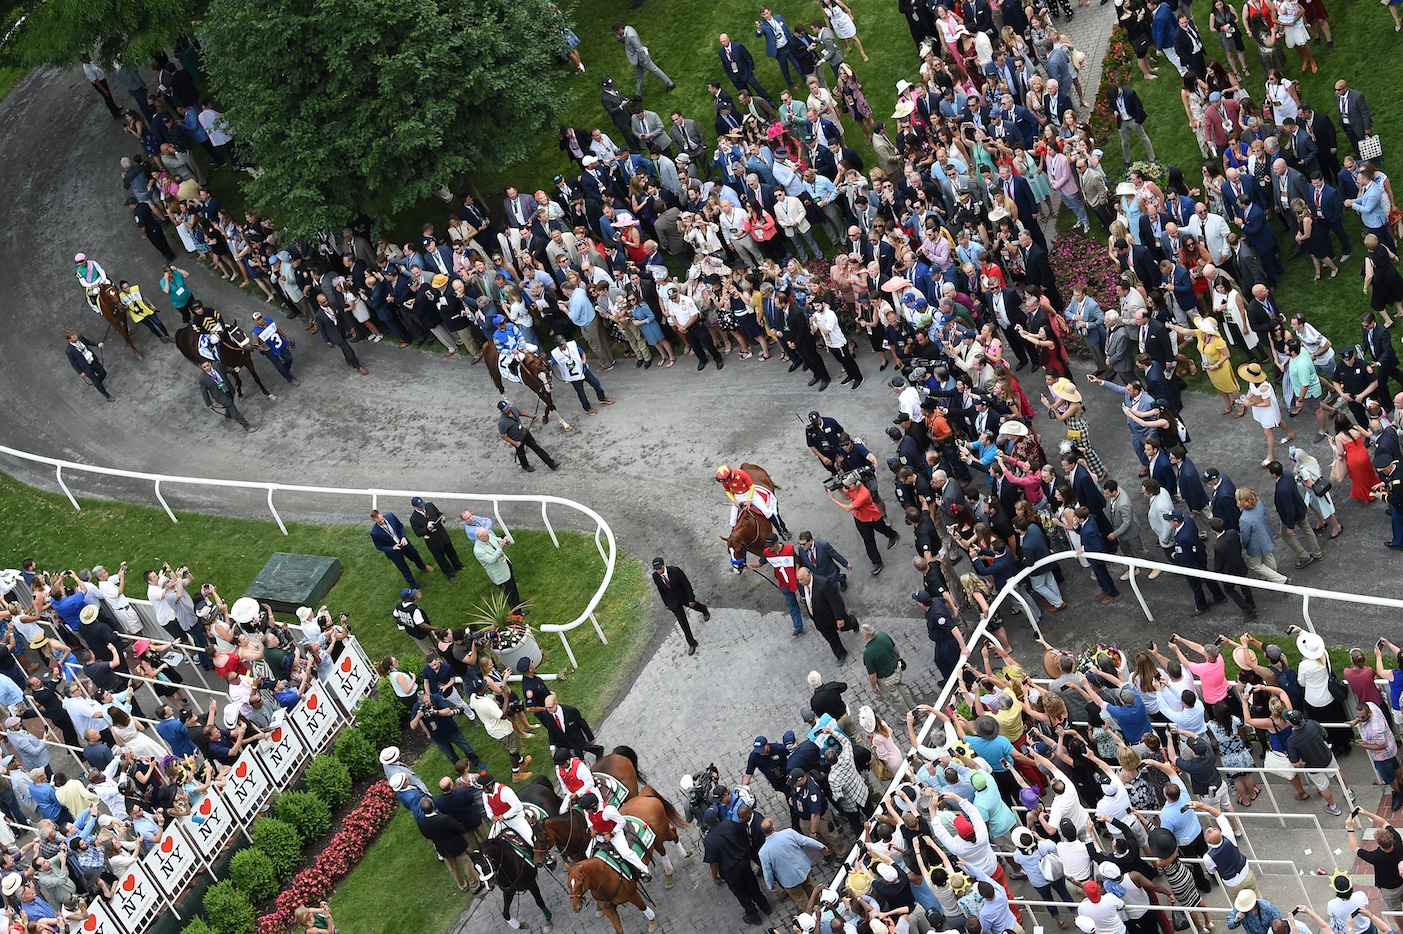 A crowd in raptures: they're all celebrating as Justify (centre) and the other runners are led back after the race. Photo: Amira Chichakly/NYRA.com